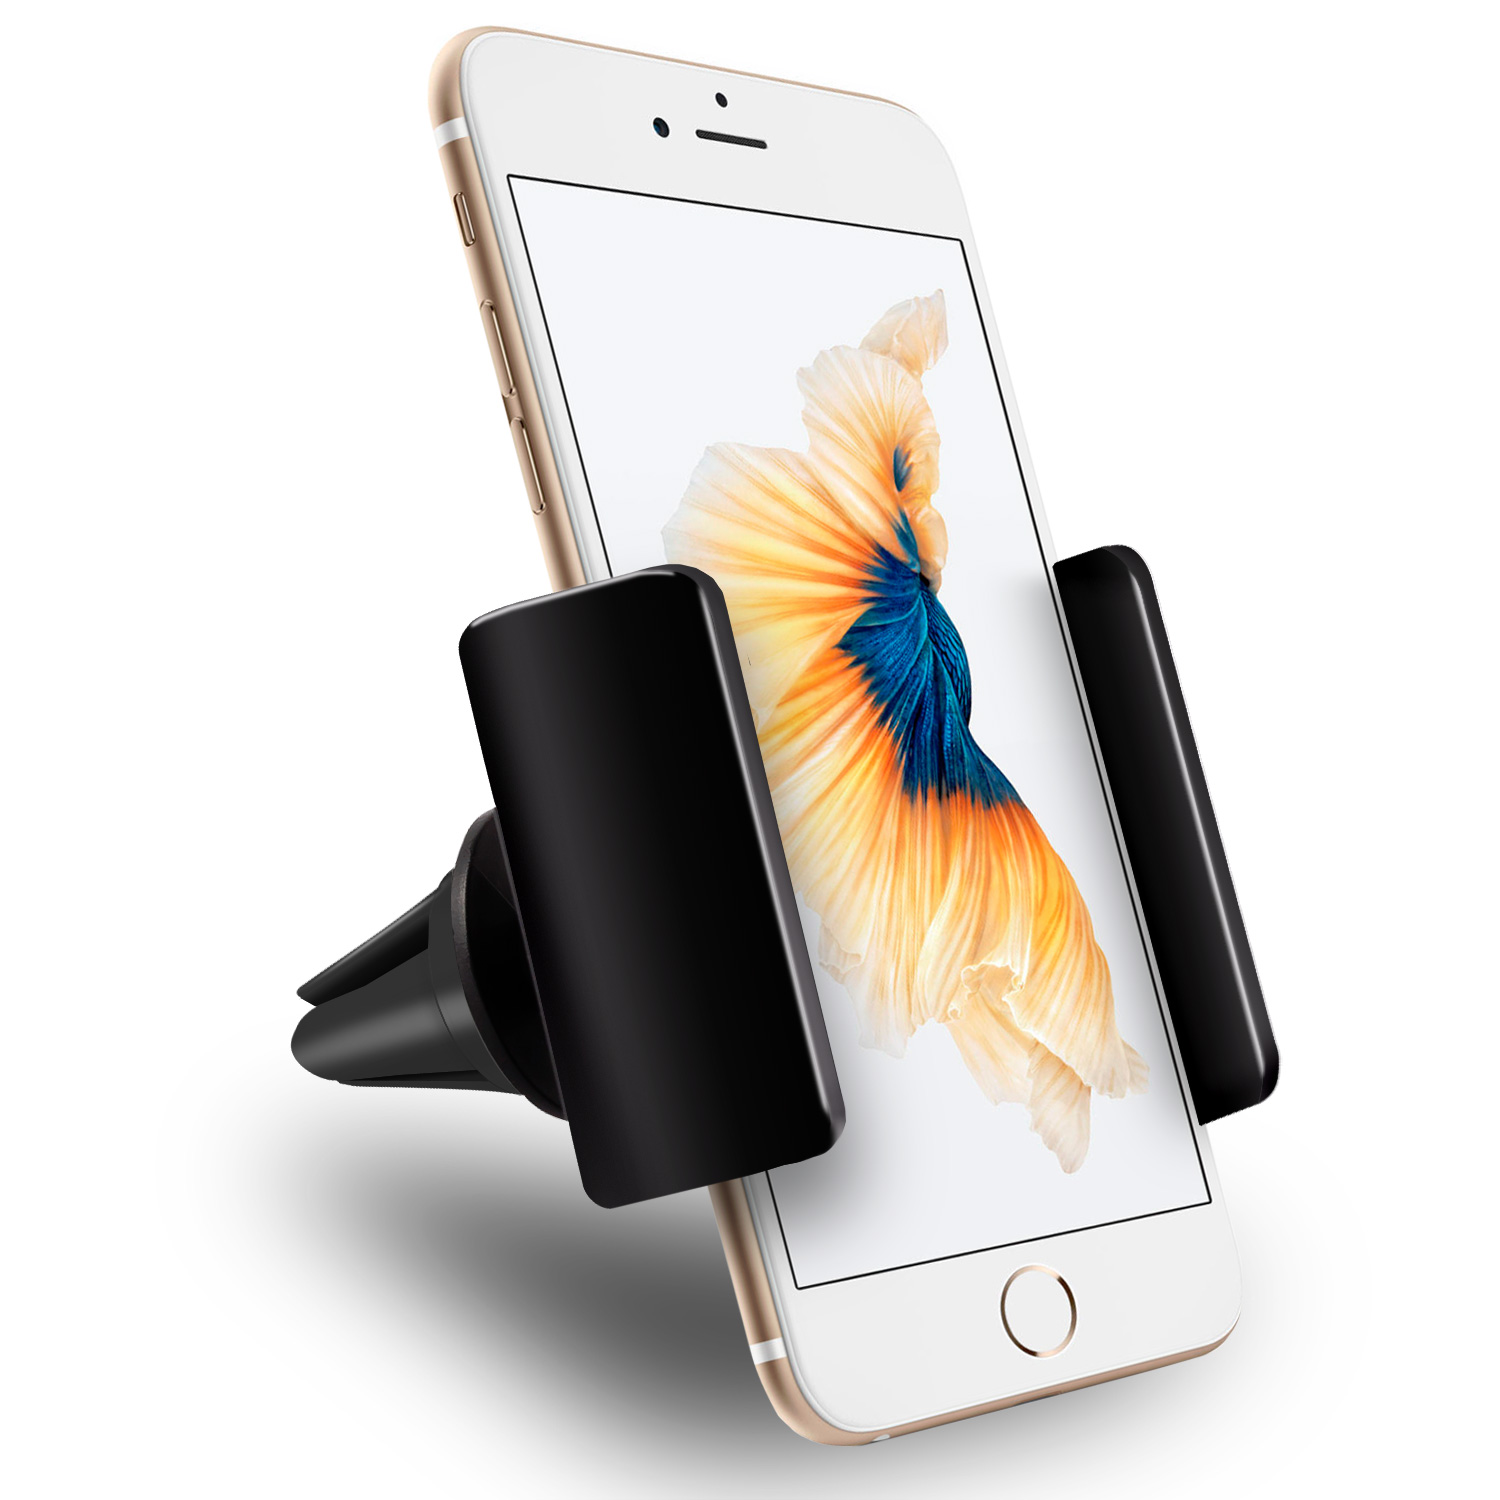 "Air Vent Car Mount, Vena AIR55 [One Hand] Mount Phone Holder for iPhone X (Ten/10) 8 Plus 8 7, Galaxy S8 Plus S8 Note 8 S7 Edge, Google Pixel XL, LG G6 G5, Moto G5 Z Force, BLU Phones (3.5""-6.3"" inch)"